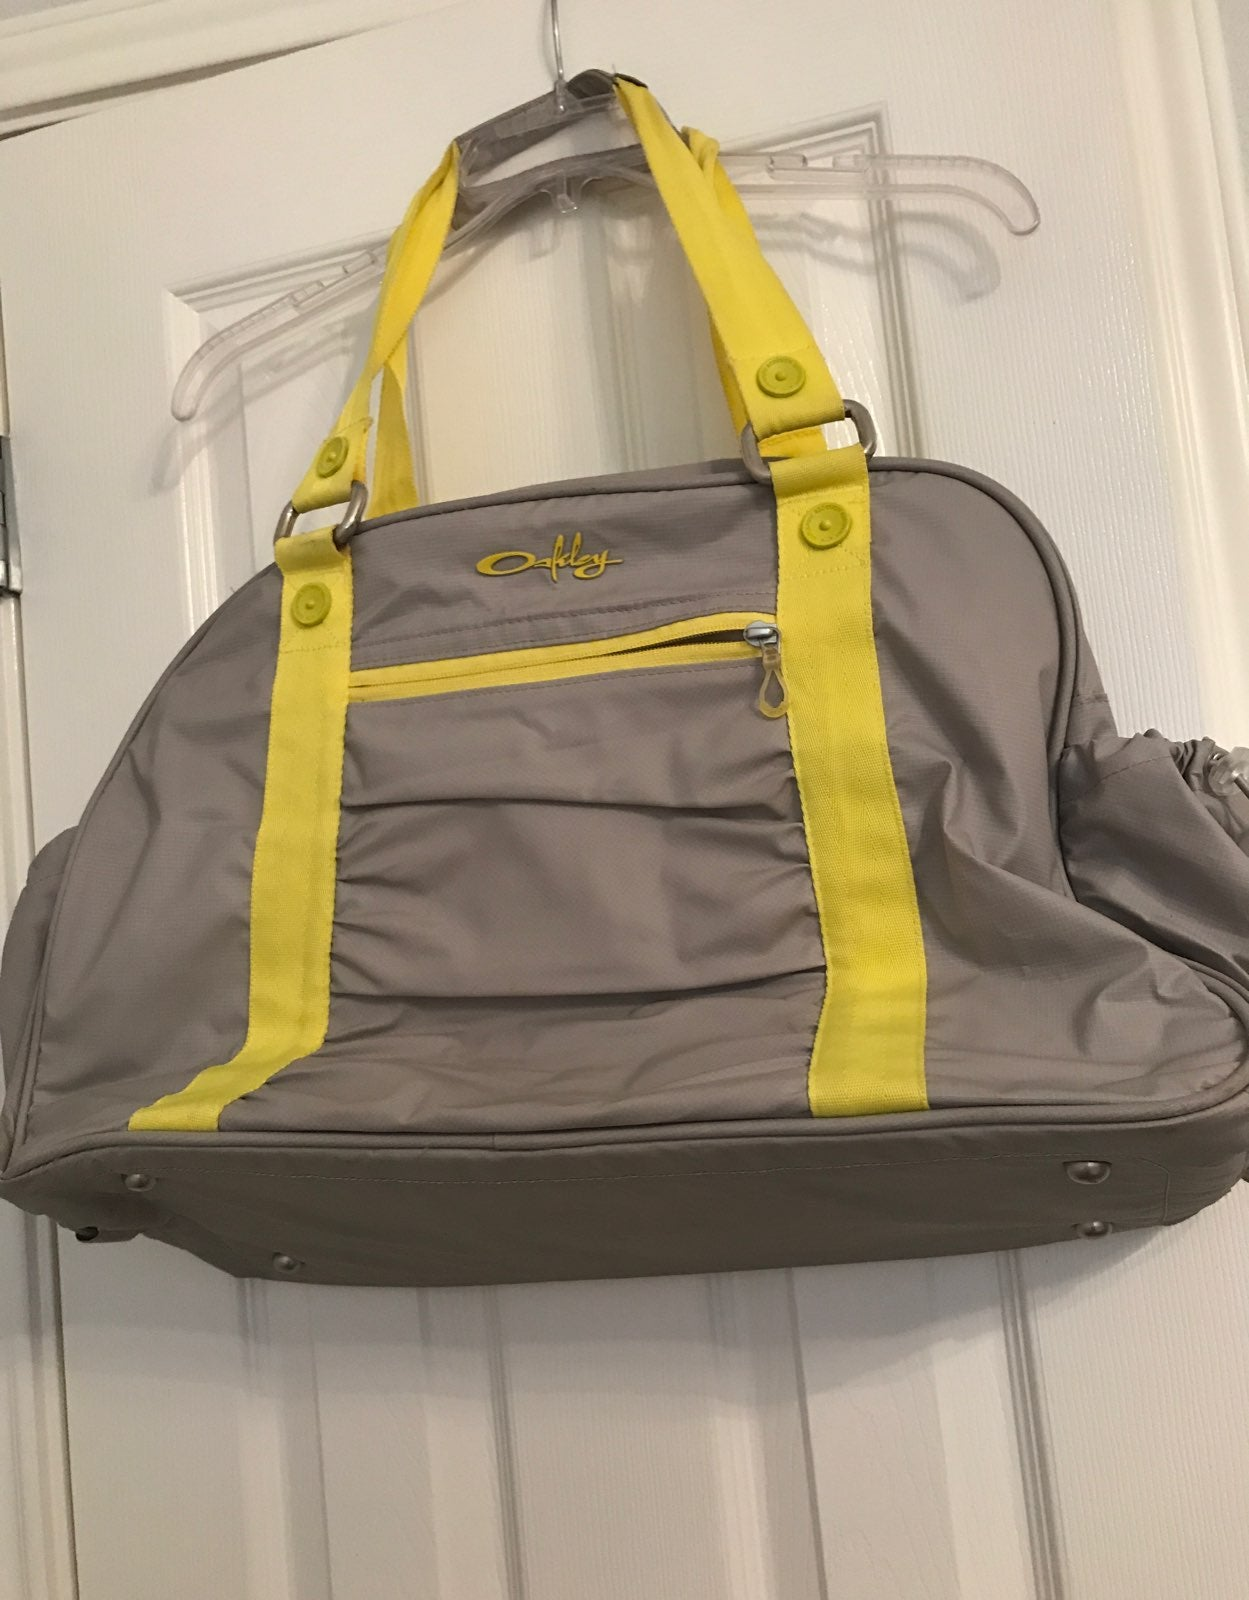 Oakley gym bag